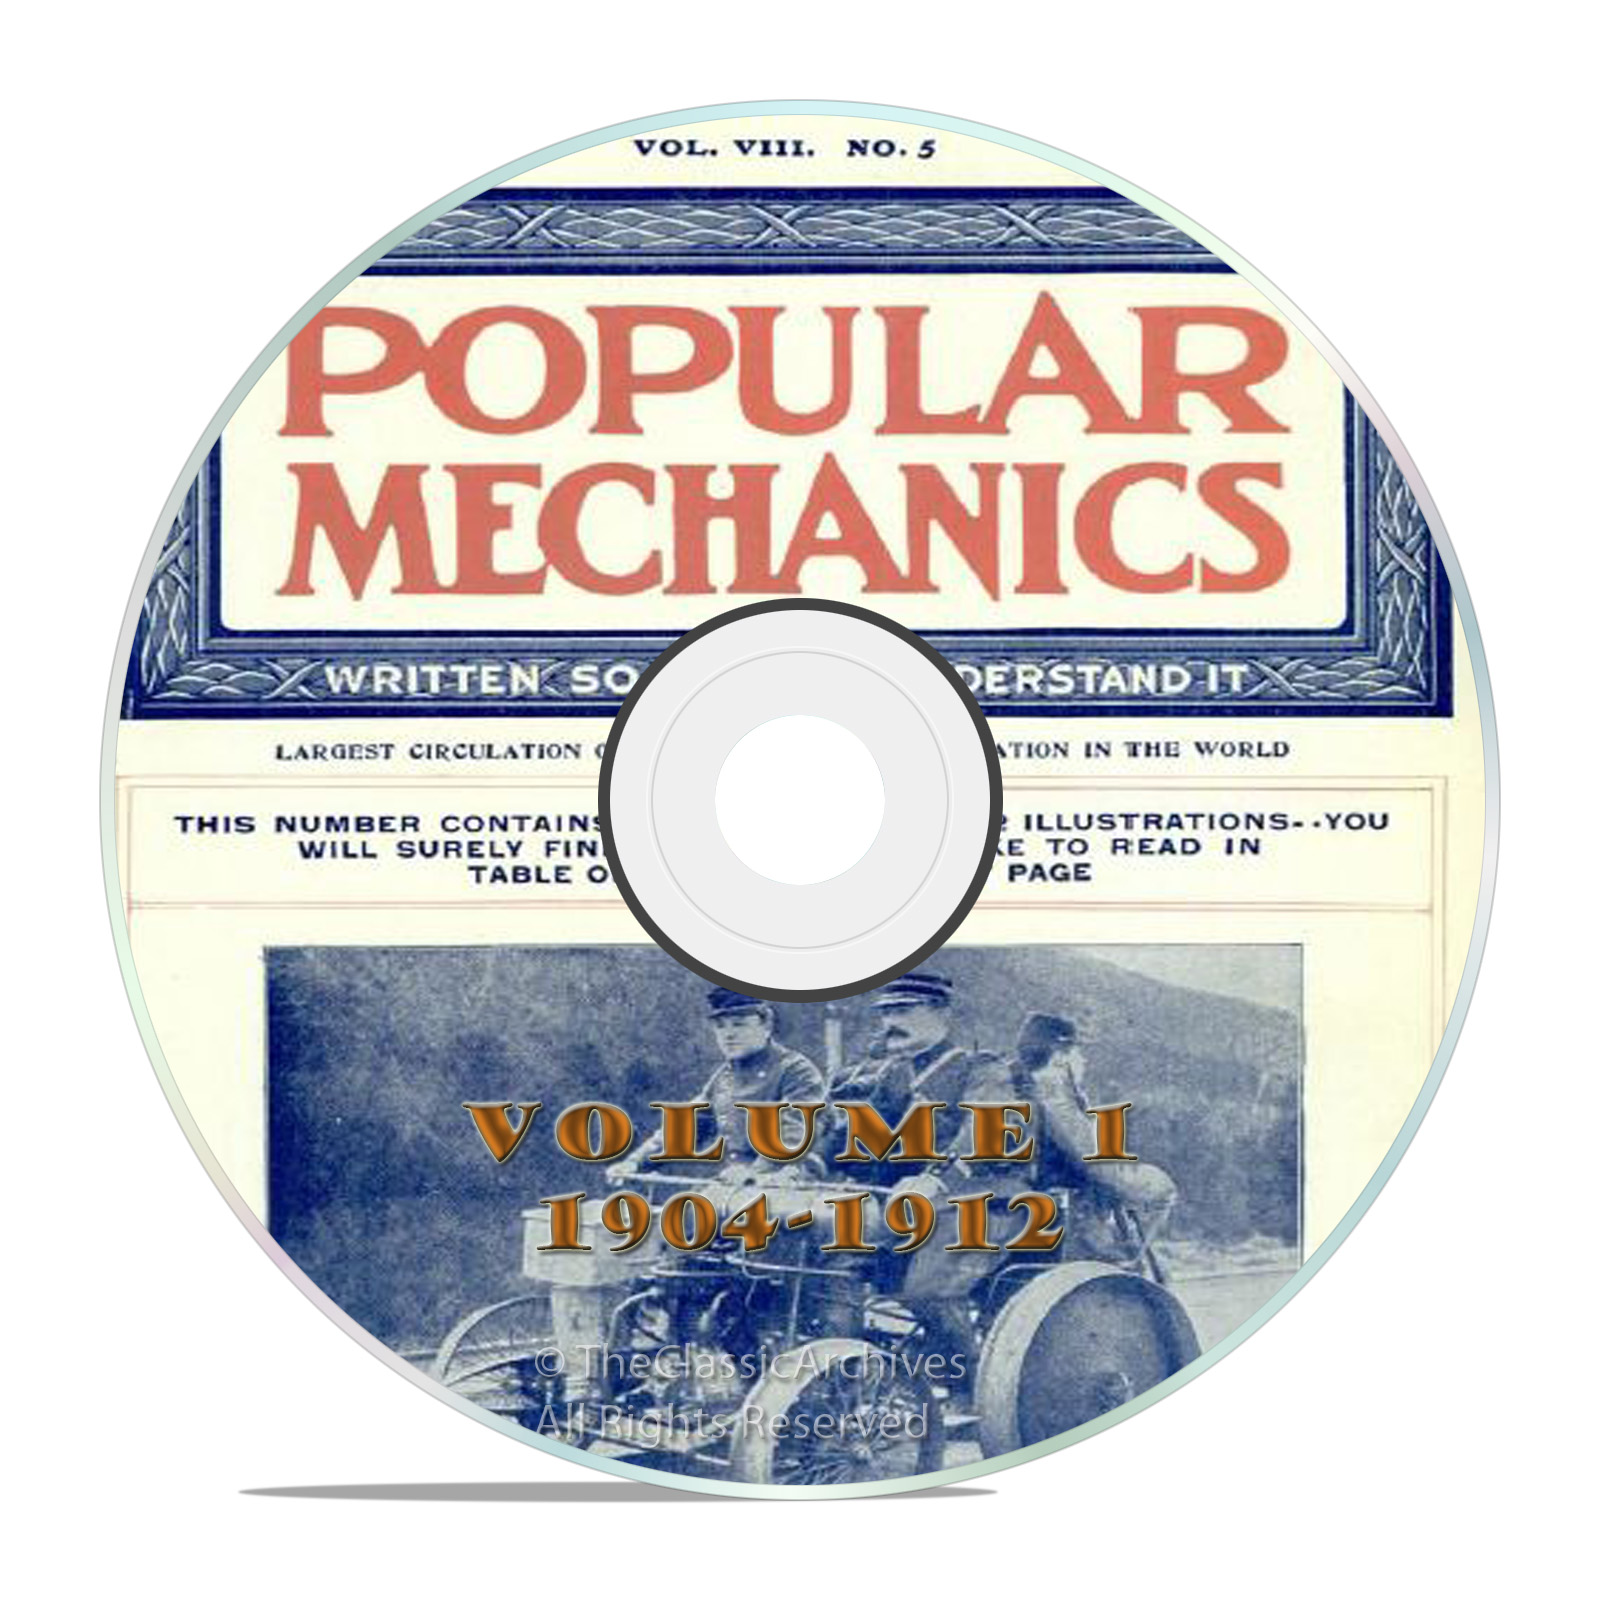 Vintage Popular Mechanics Magazine